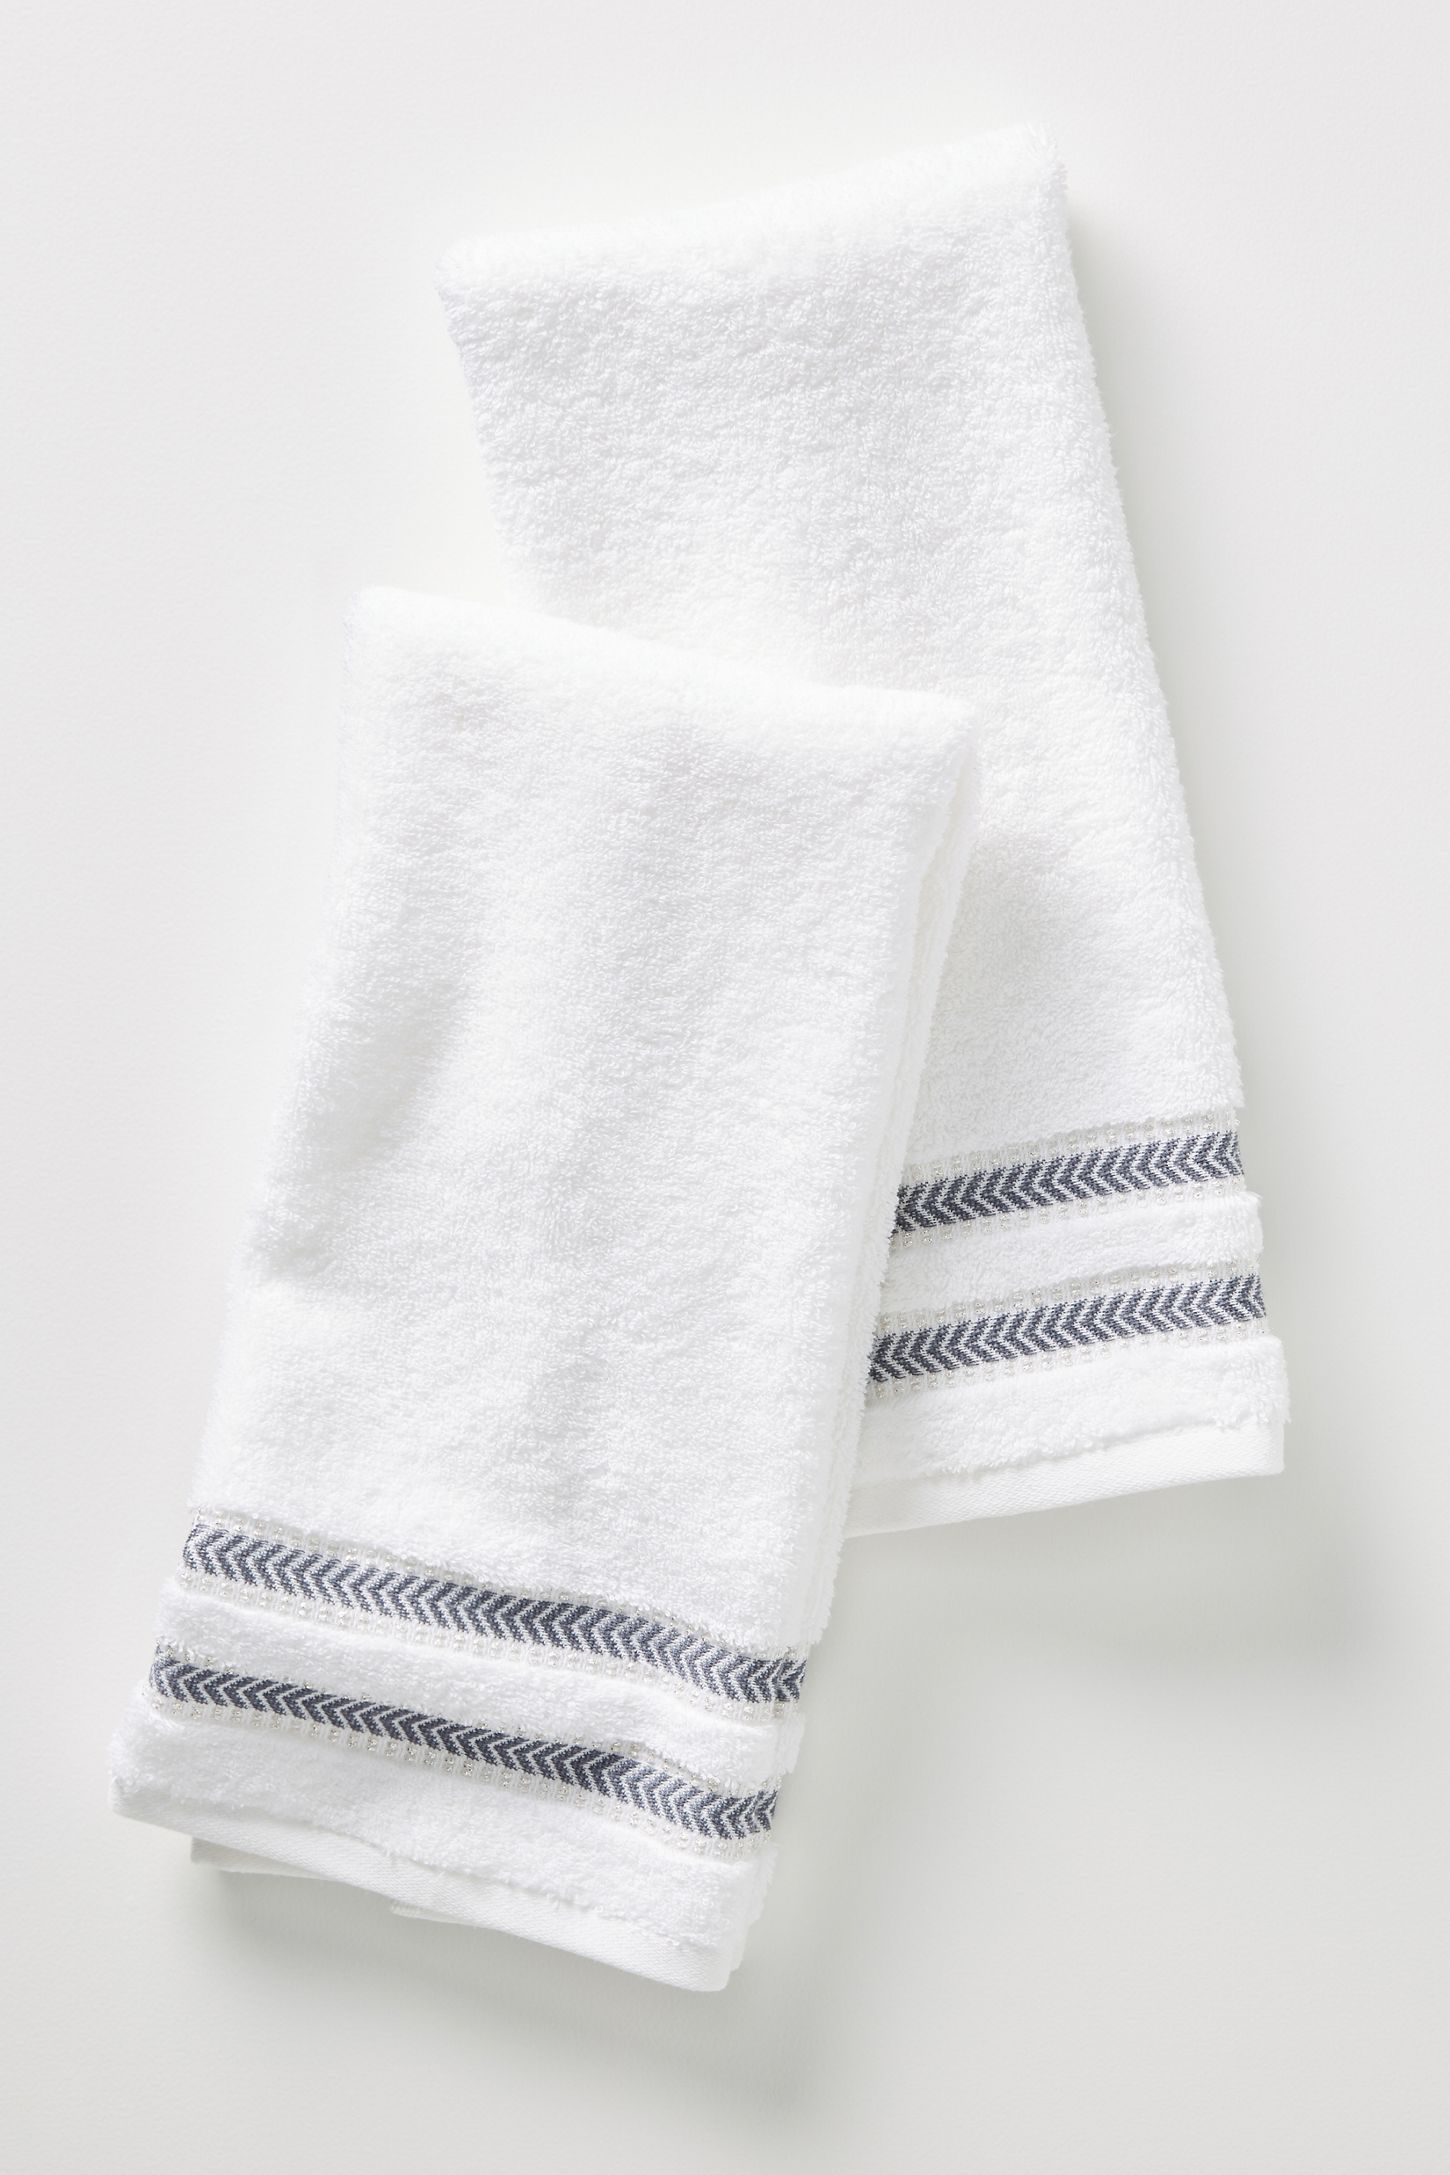 Maisie Metallic Hand Towels, Set of 2 by Anthropologie in White, Bath #handtowels